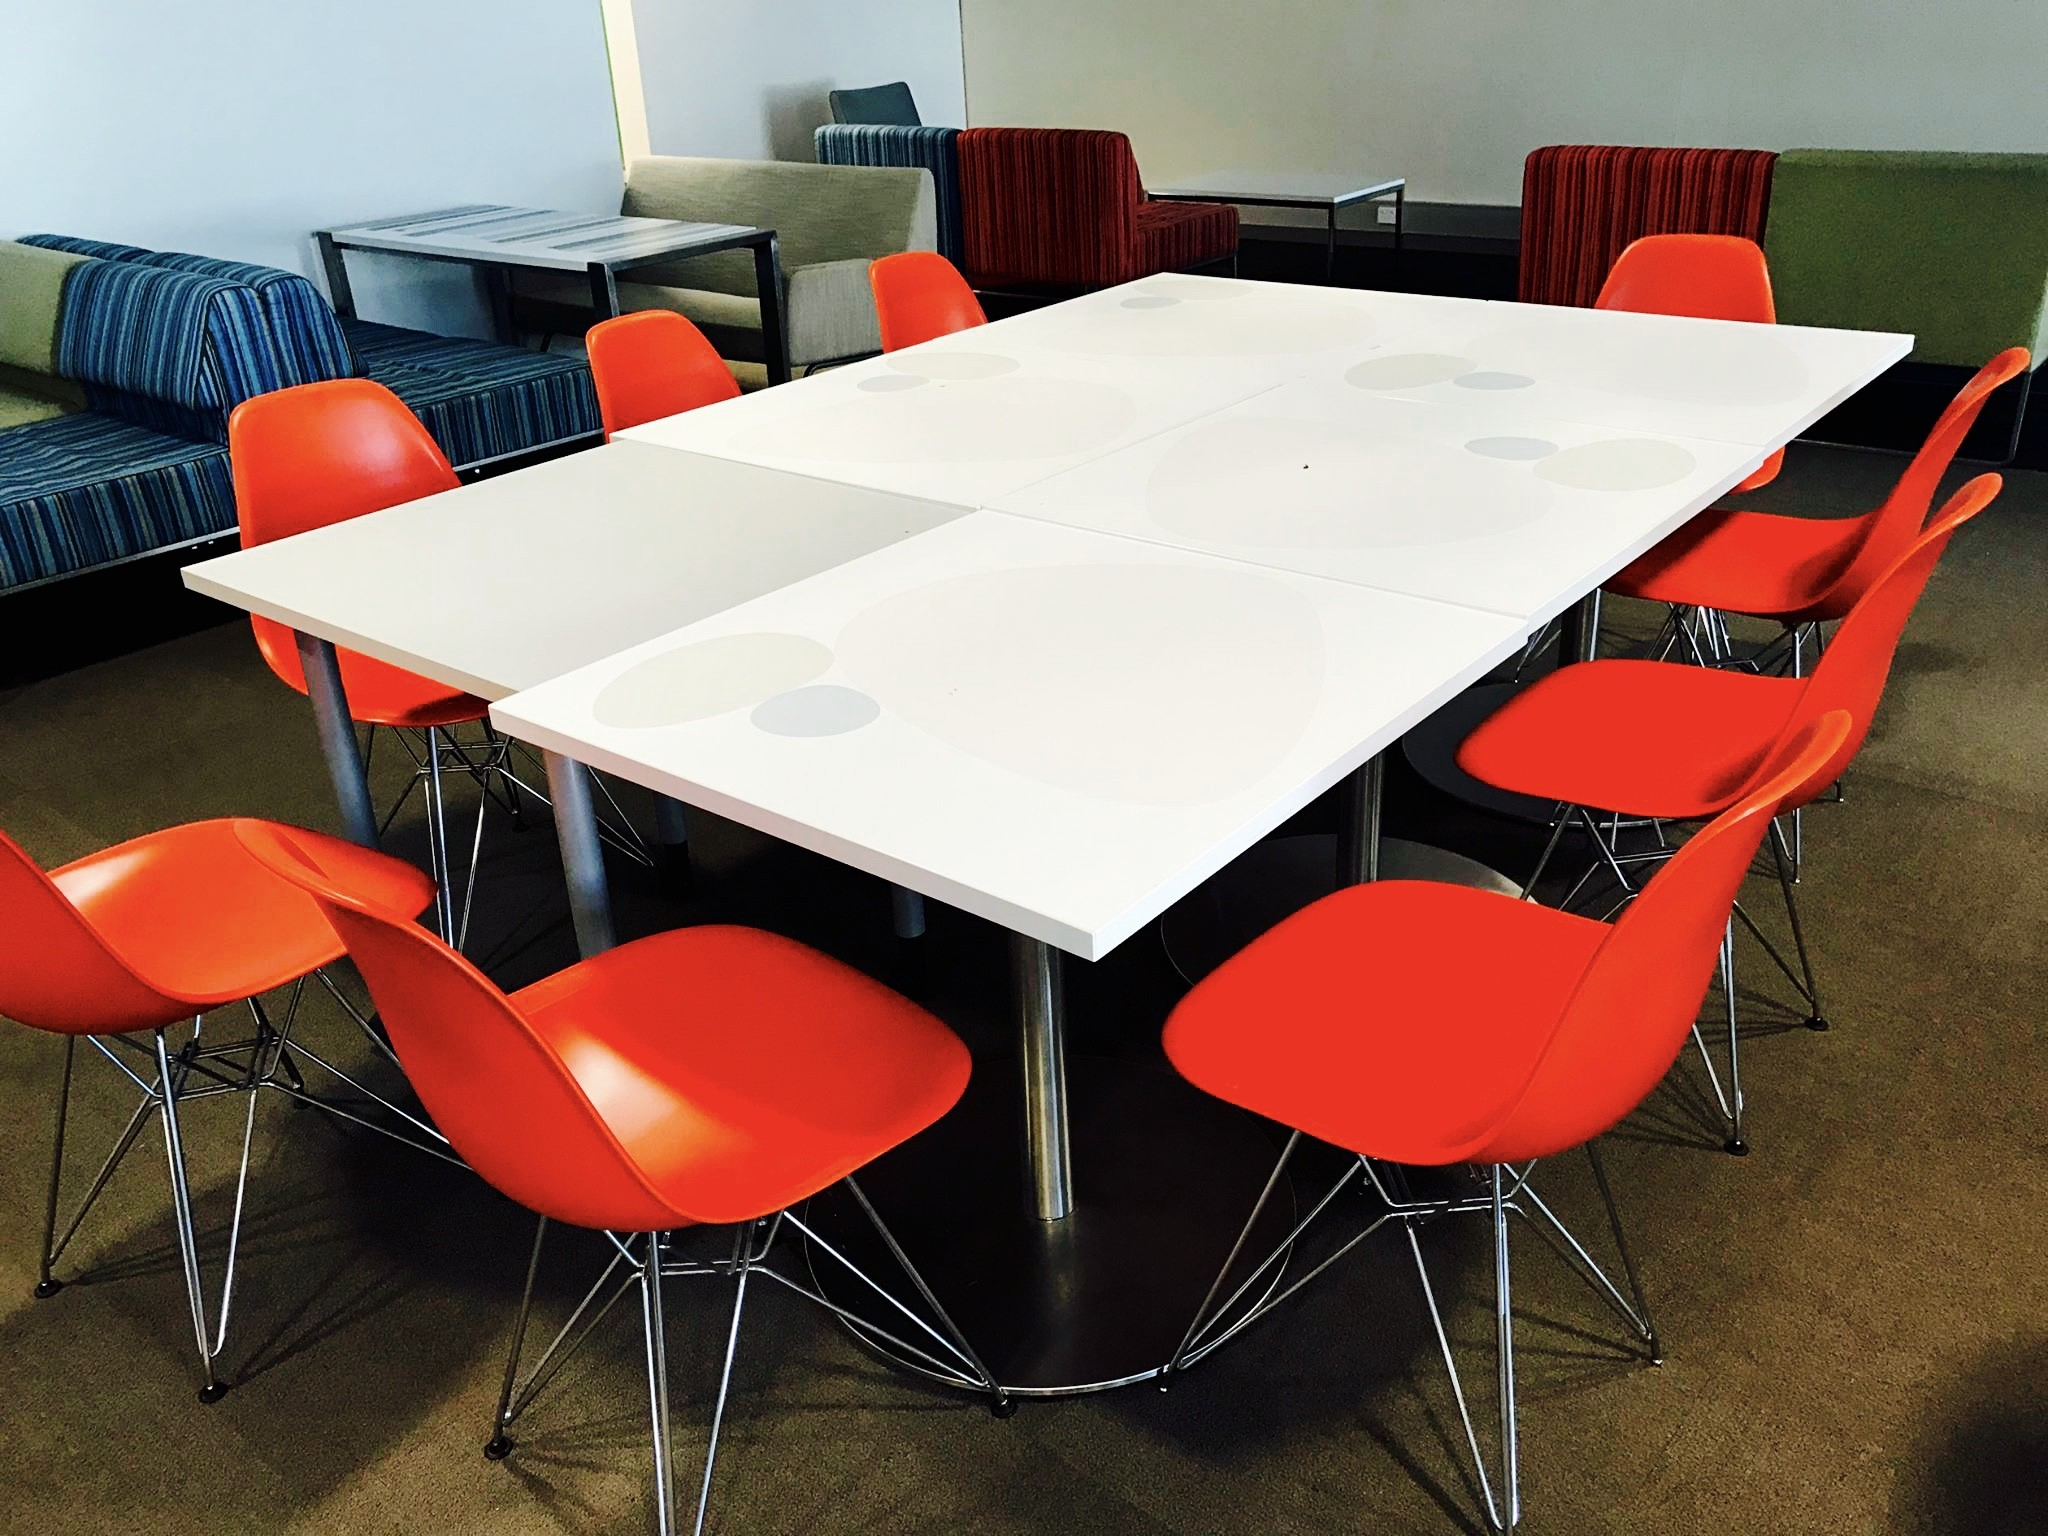 Marvelous Cbd Quality Used Office Furniture Office Supplies Download Free Architecture Designs Scobabritishbridgeorg